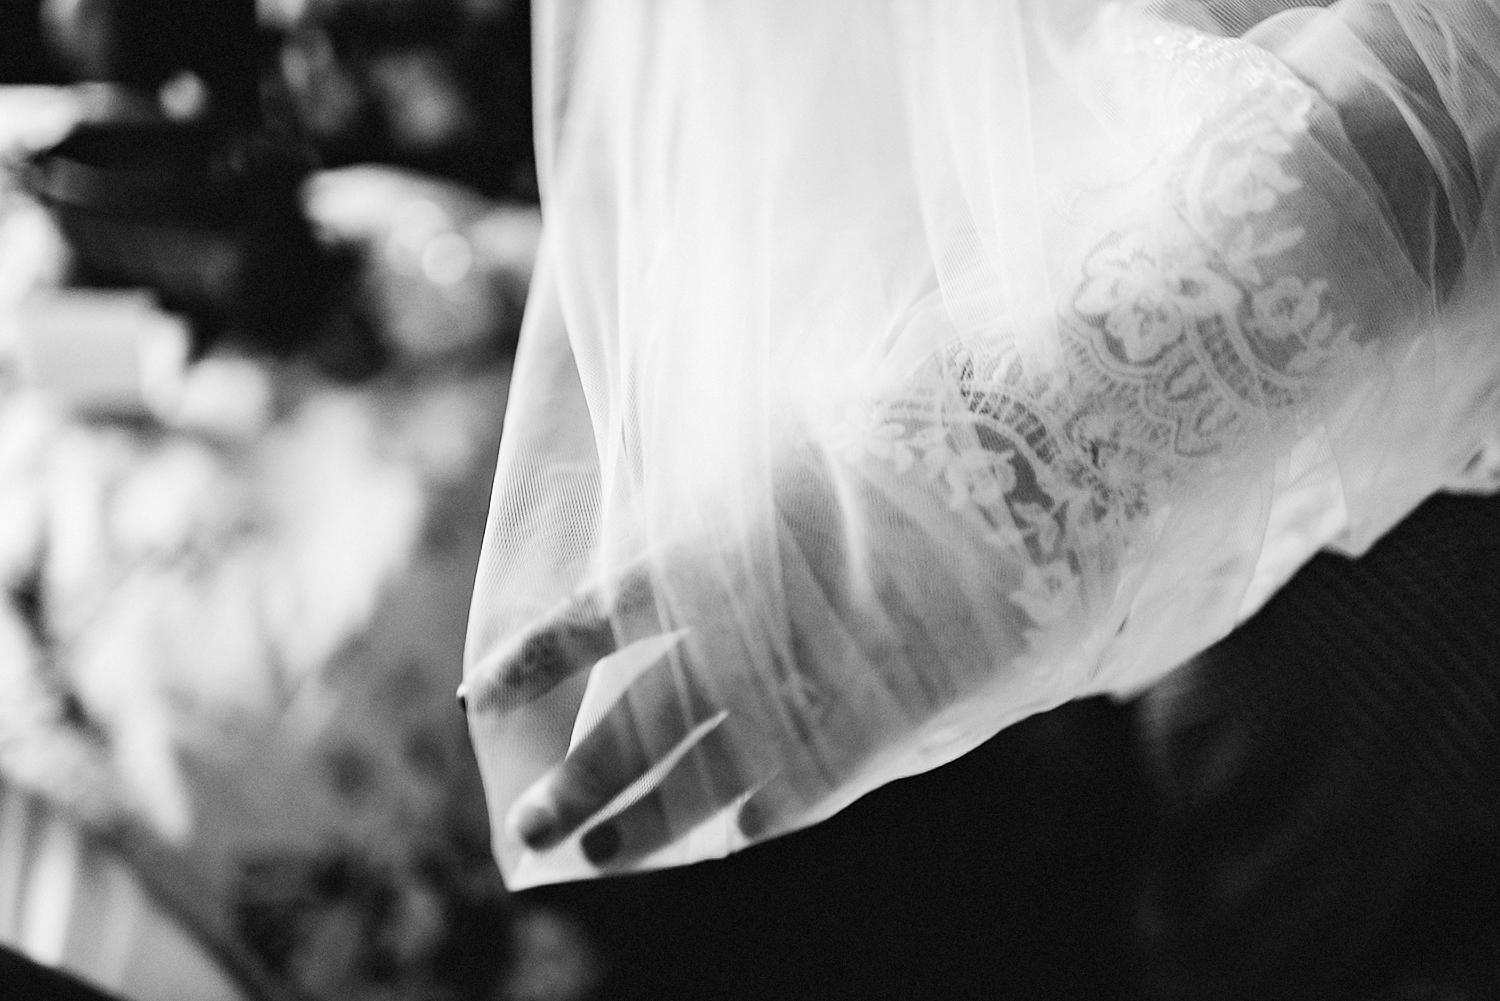 Toronto's-Best-Film-Wedding-Photography-3B-Photography-Multicultural-wedding-day-two-Hamilton-Grimsby-Toronto-Wedding-documentary-photojournalistic-photojournalism-Black-and-White-veil-detail.jpg